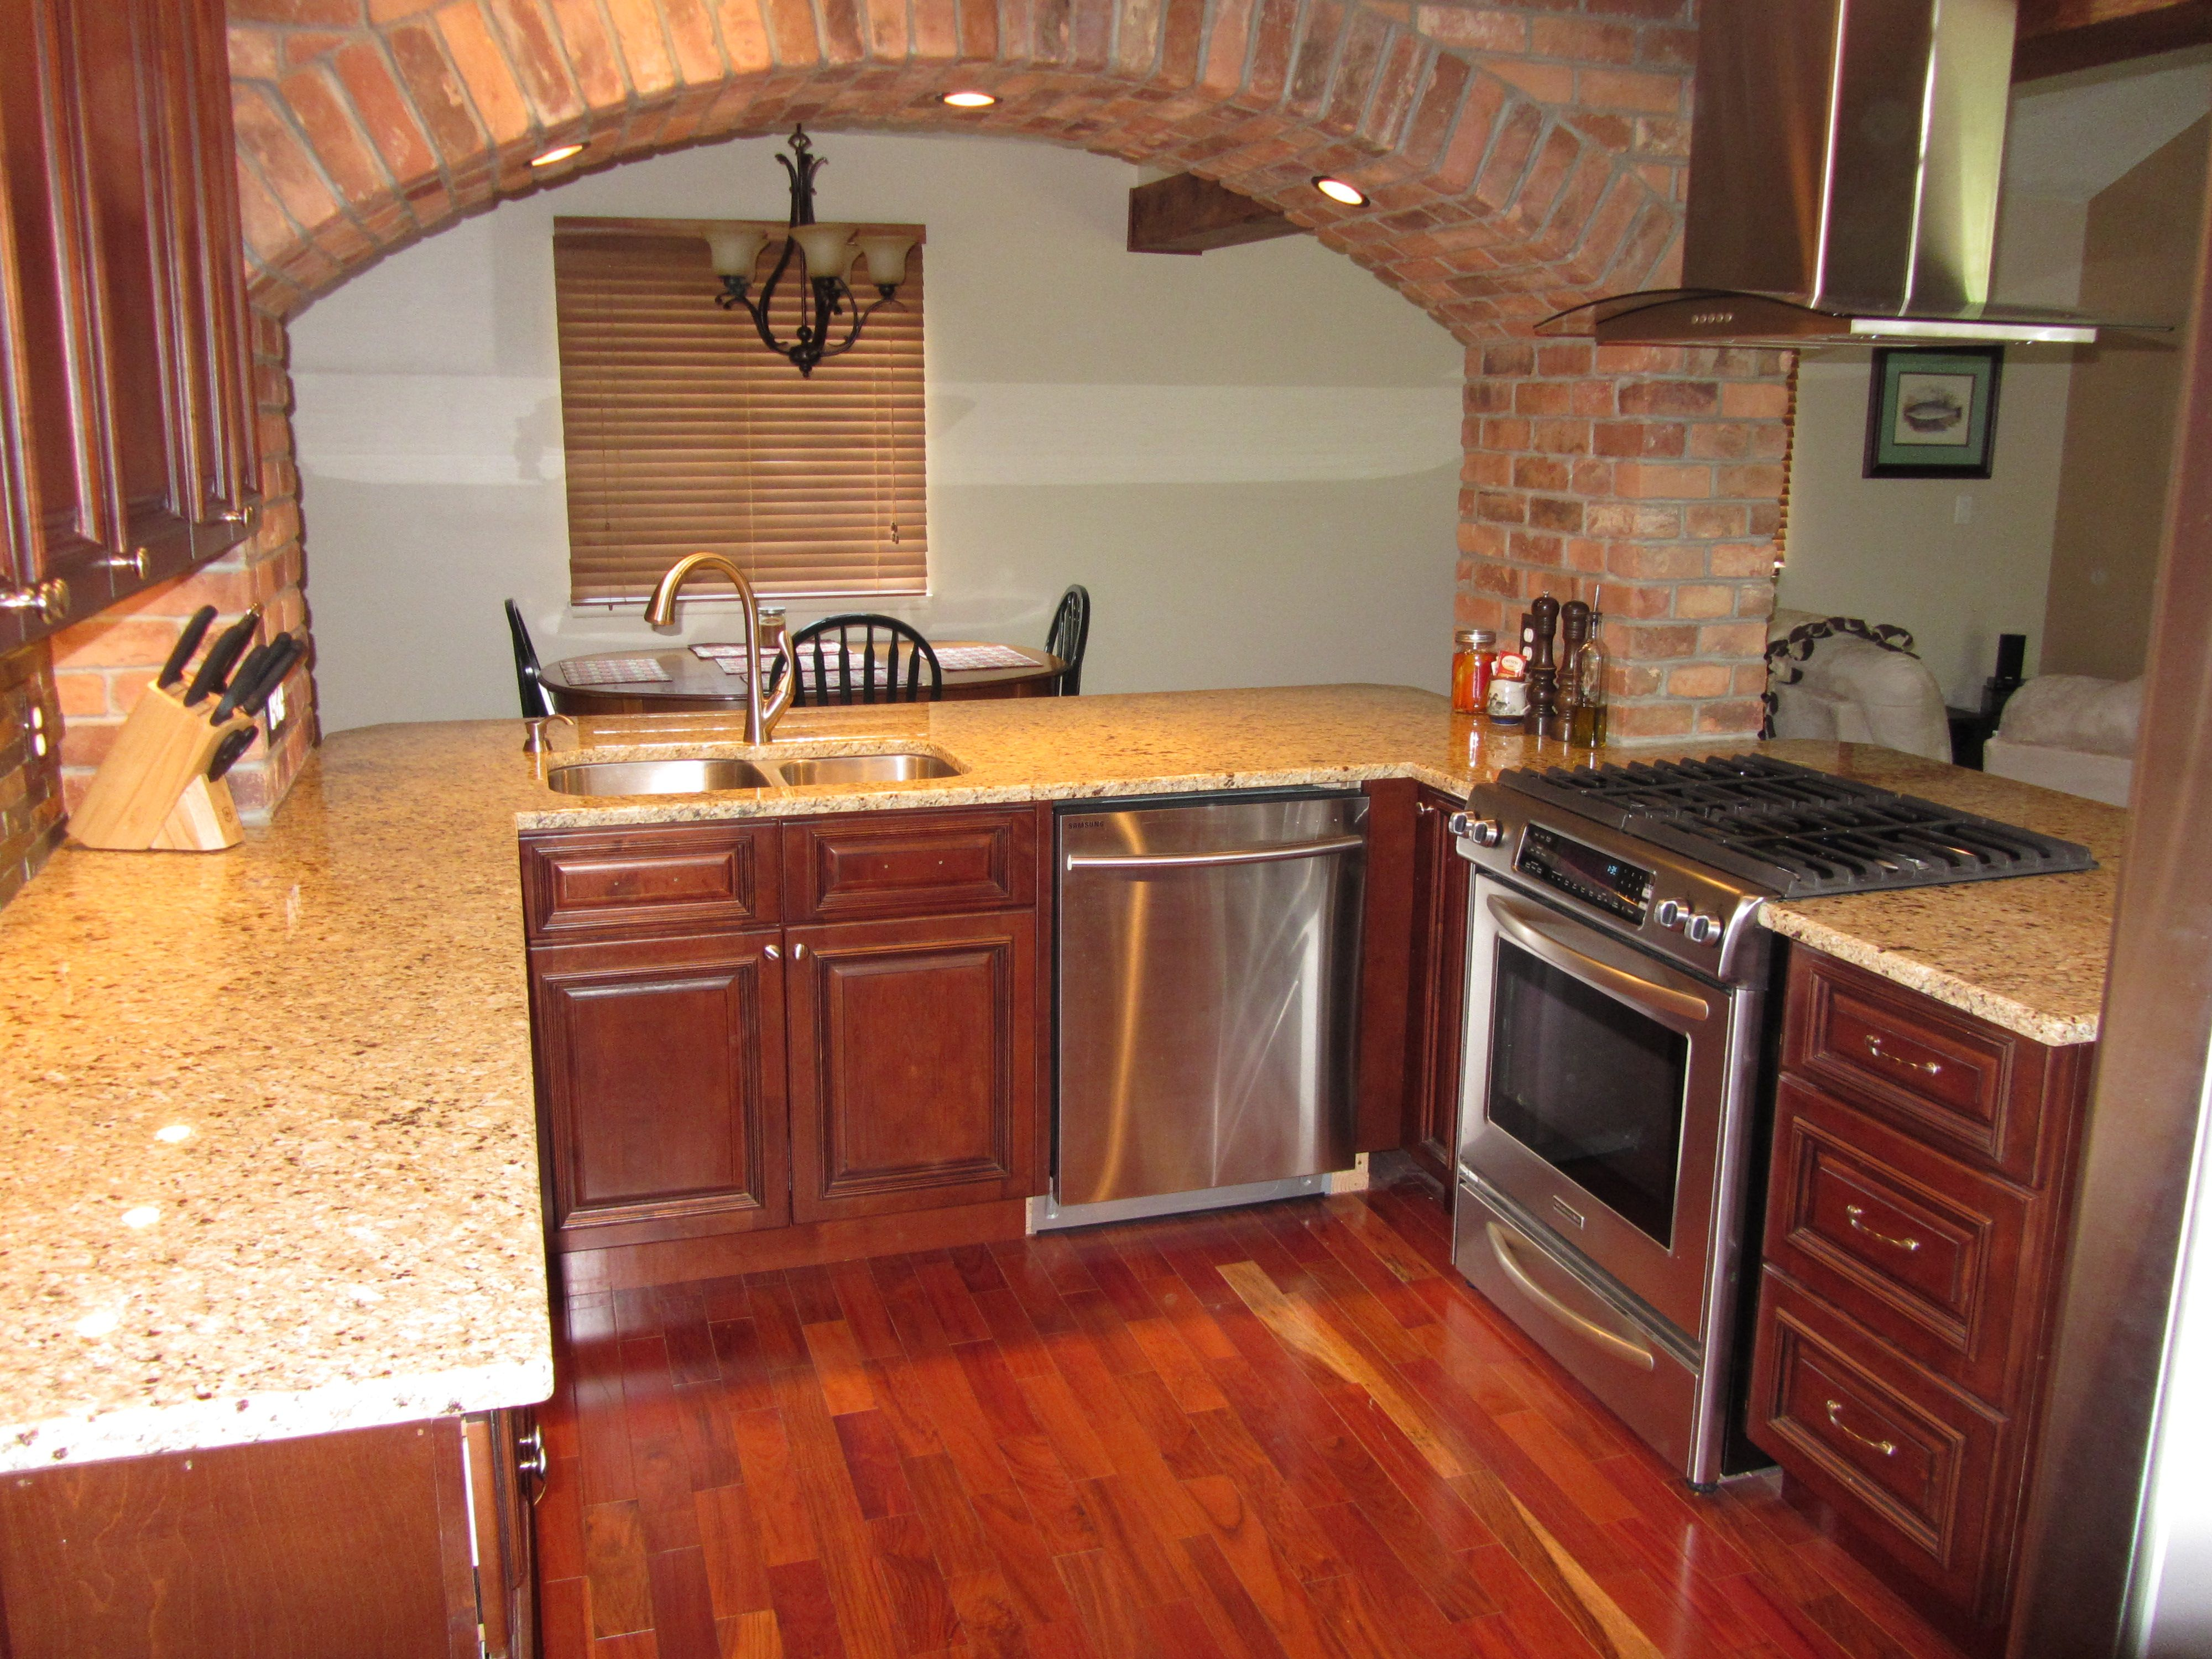 Rta Cabinet Store Brandywine Kitchen Cabinets With An Arched Pass Through To The Dining Room Kitchen Cabinets Maple Kitchen Cabinets Rta Kitchen Cabinets